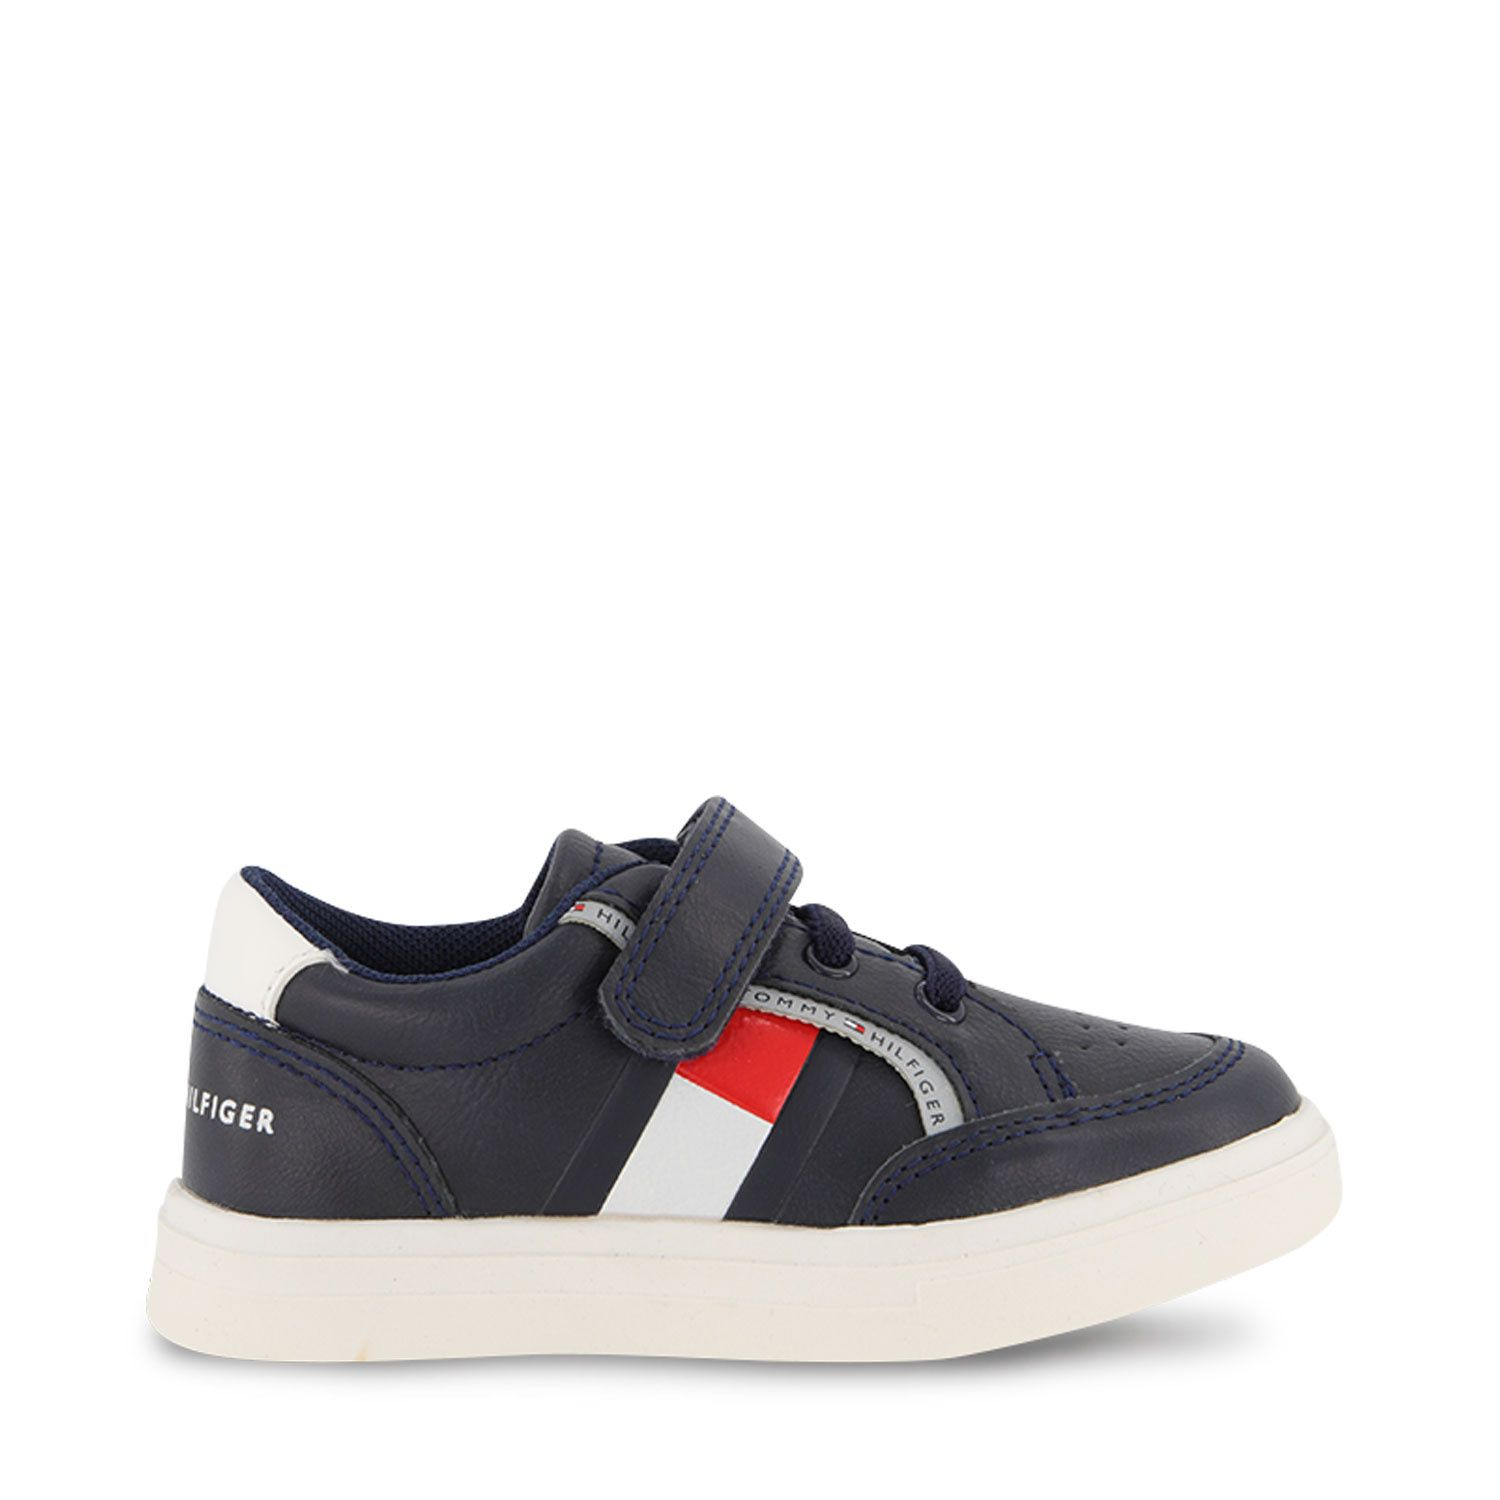 Picture of Tommy Hilfiger 32038 kids sneakers navy